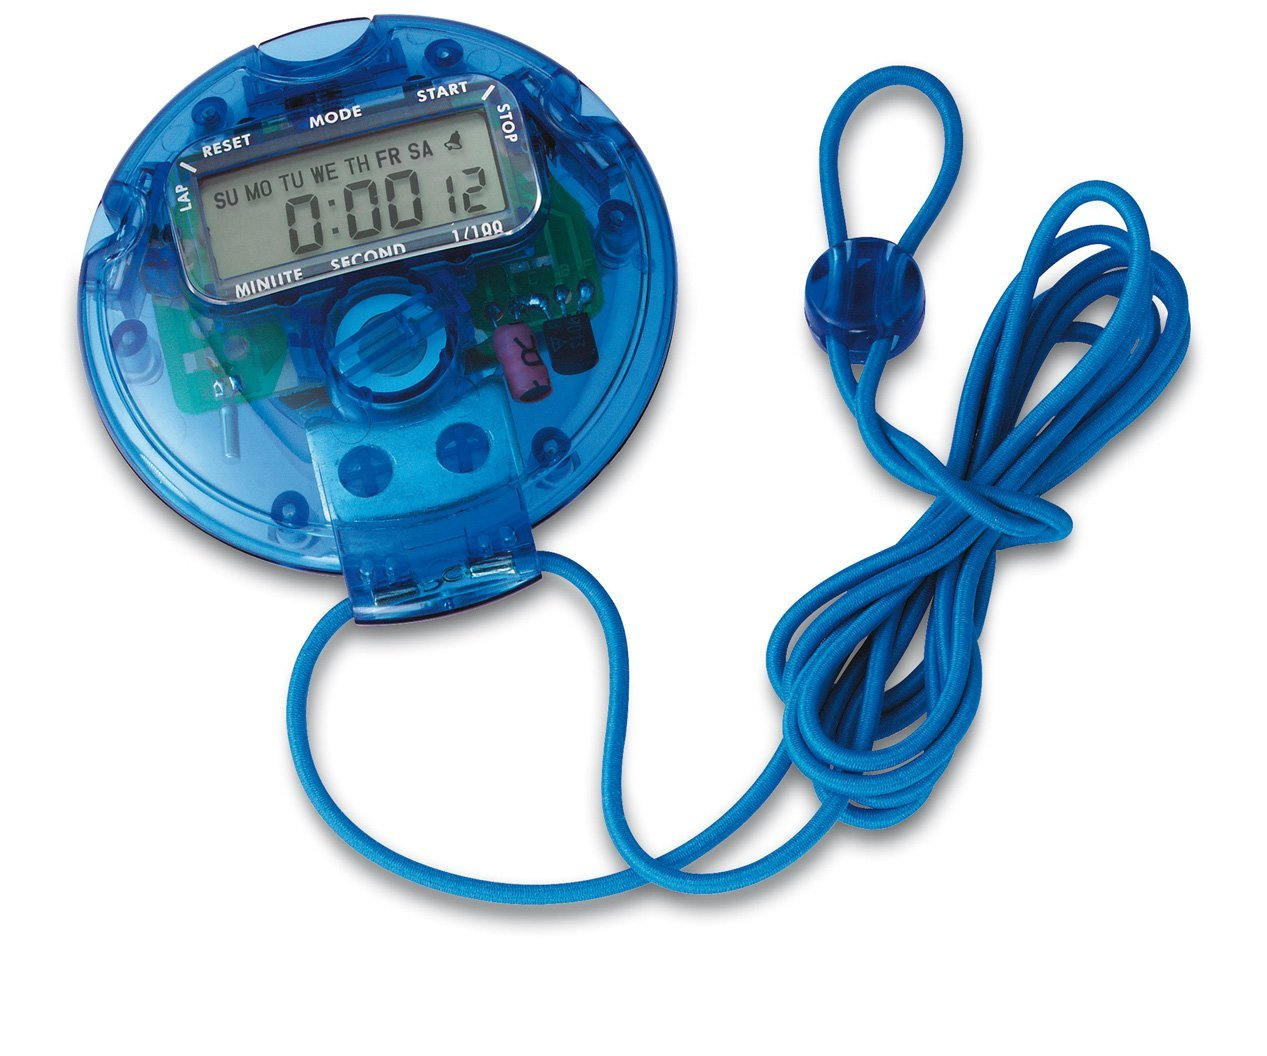 (2) 250x Multifunctionele stopwatch